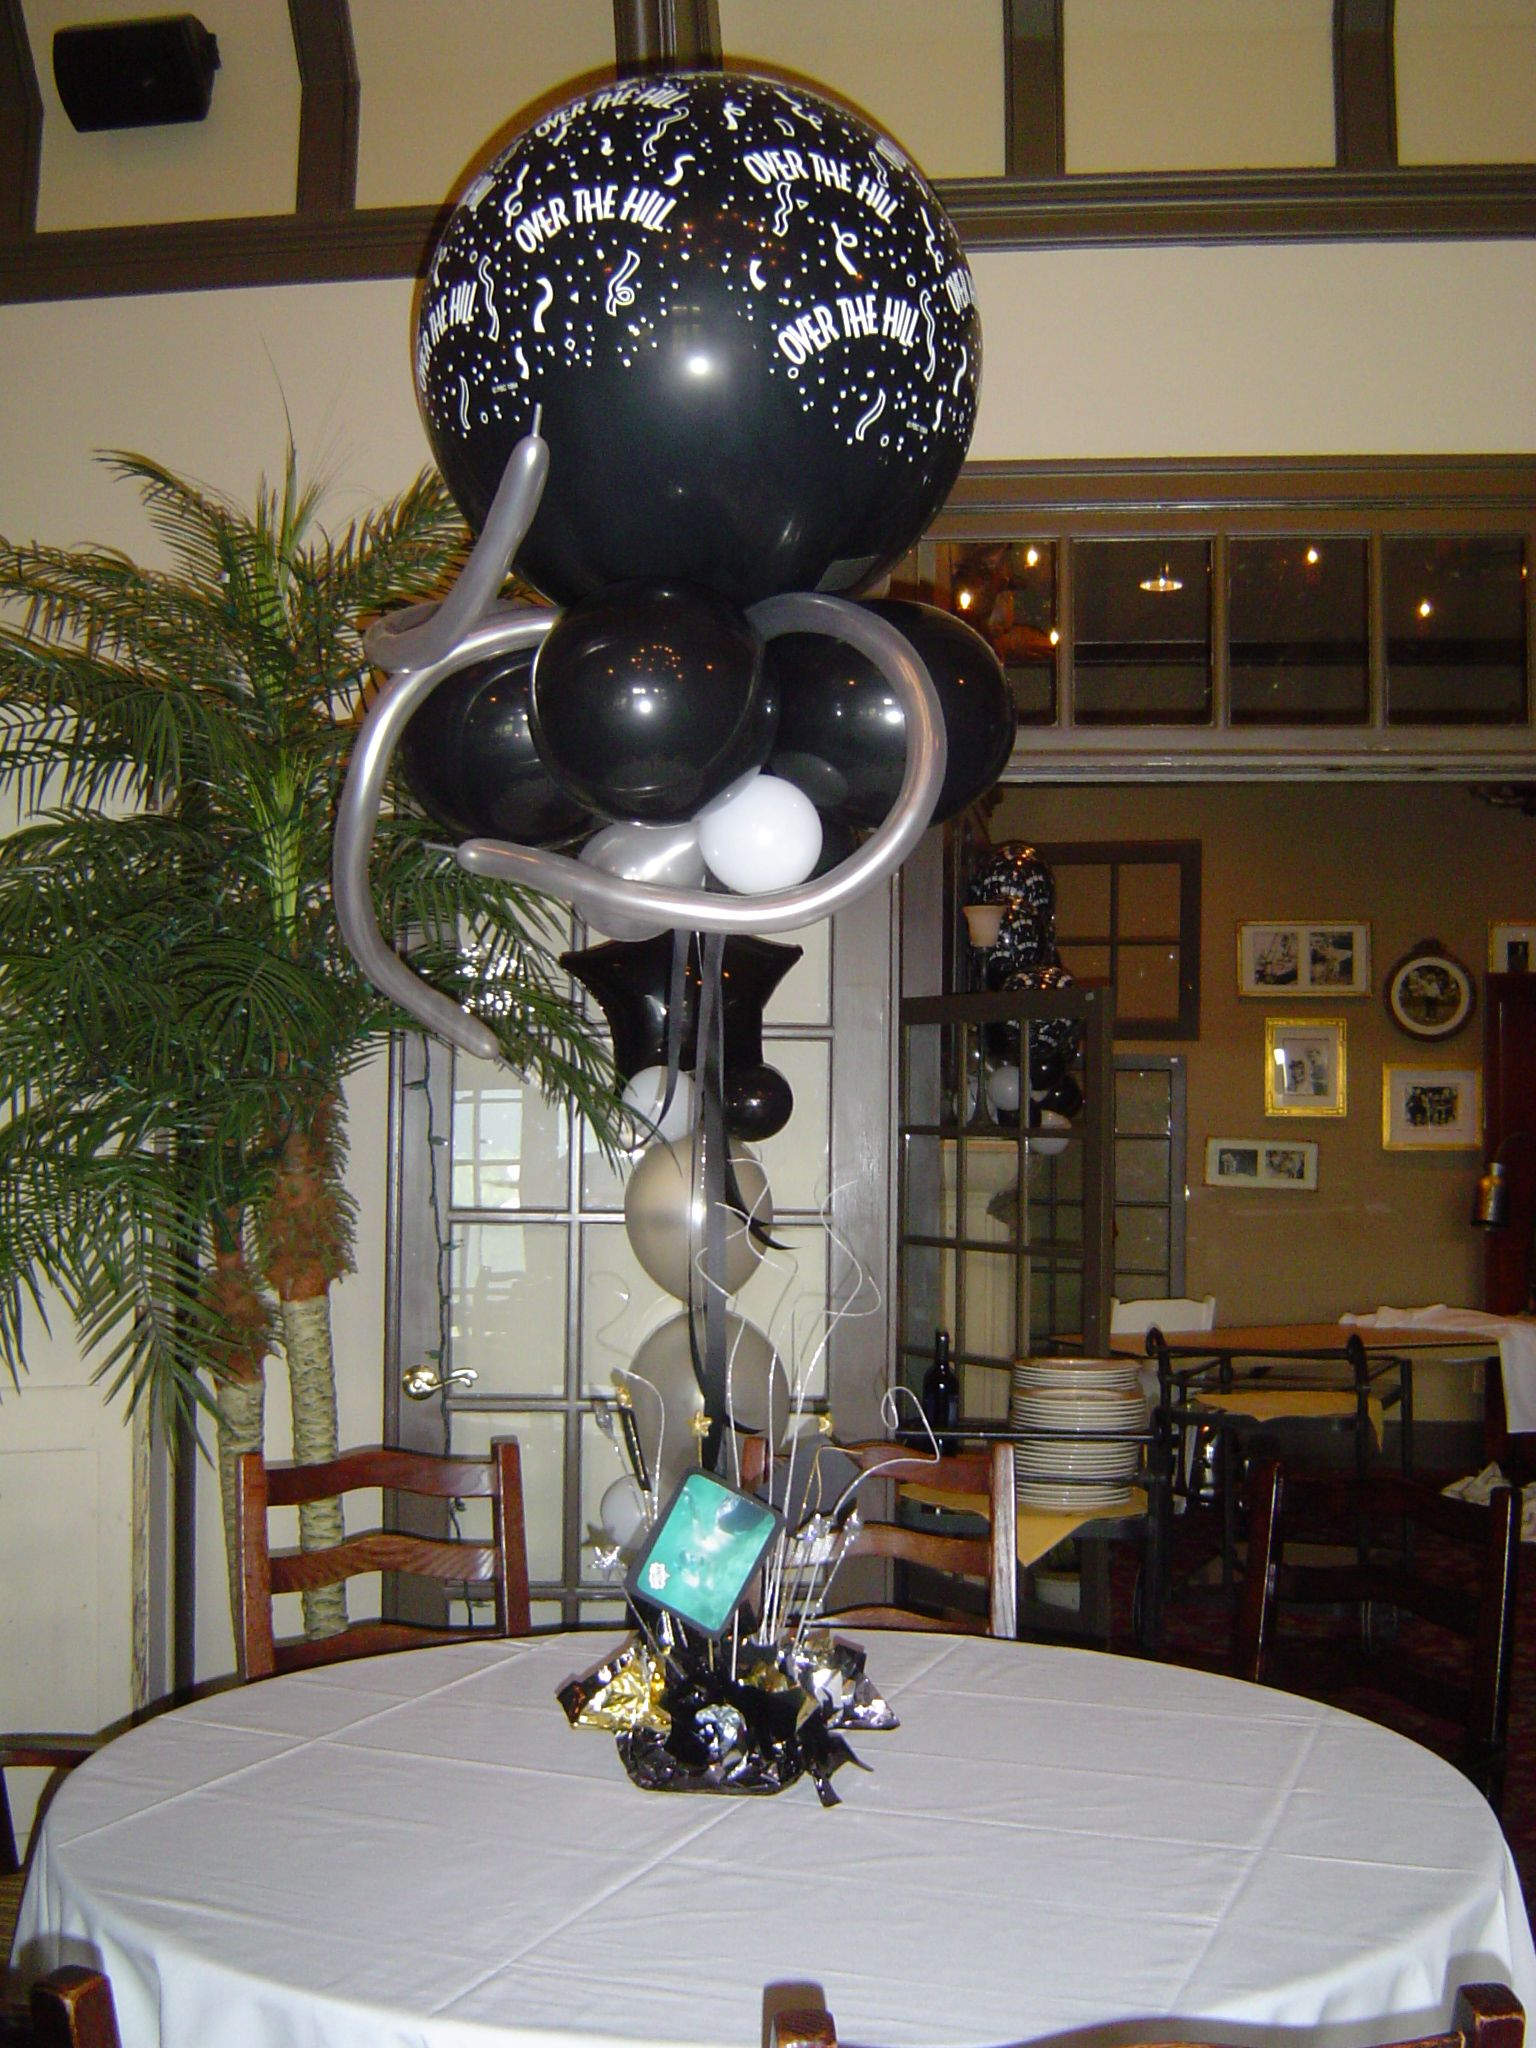 Birthday table decorations for men - 40th Birthday Decorations Birthday Decor Gallery 40th Birthday Balloon Table Centerpiece 2